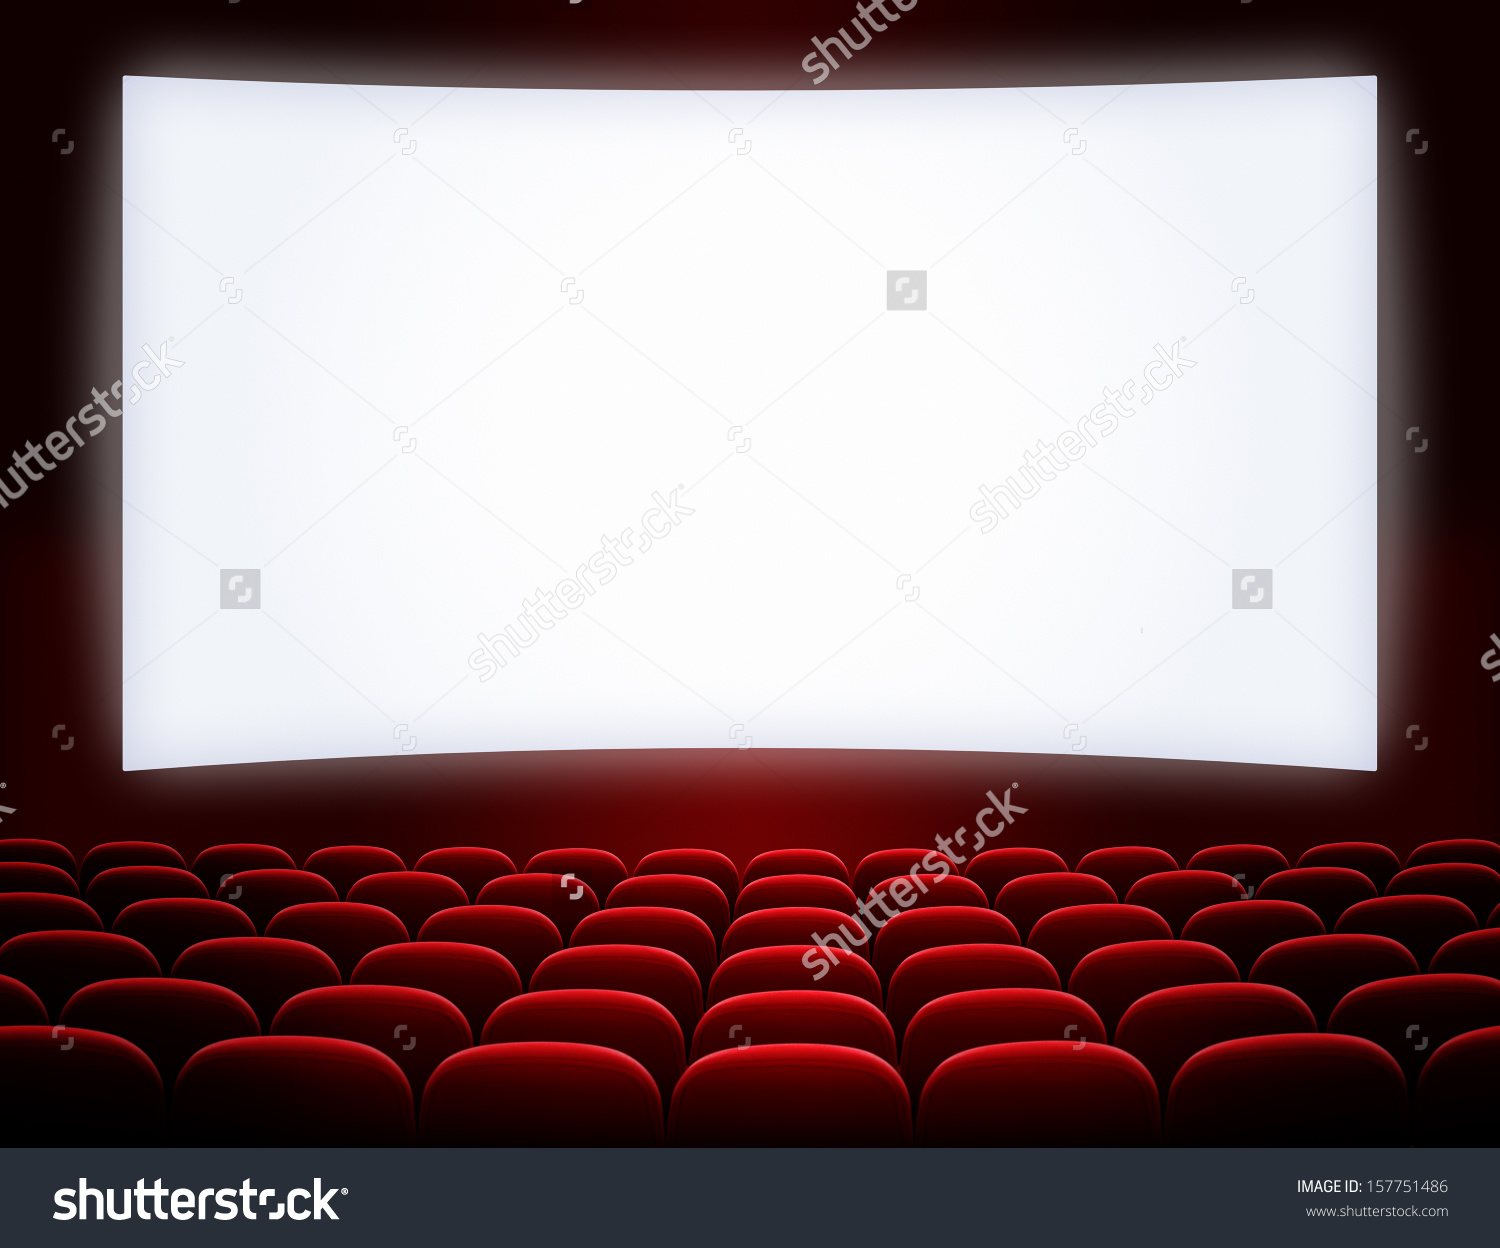 Cinema Screen With Open Red Seats Stock Photo 157751486 : Shutterstock.